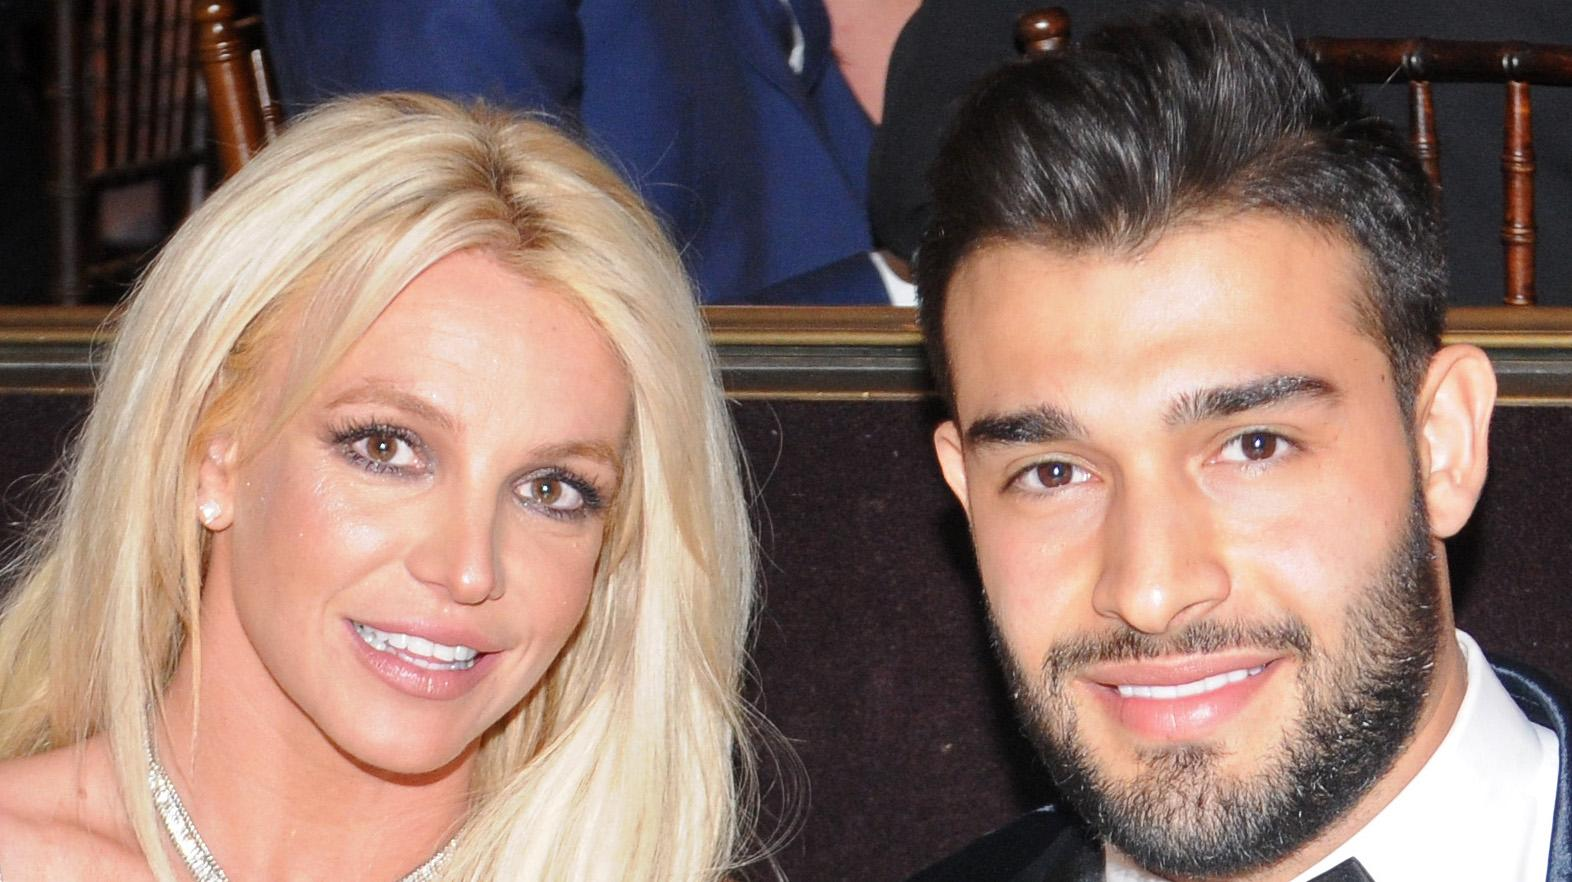 Britney Spears And Sam Asghari - Inside Their Marriage And Babies Plans!